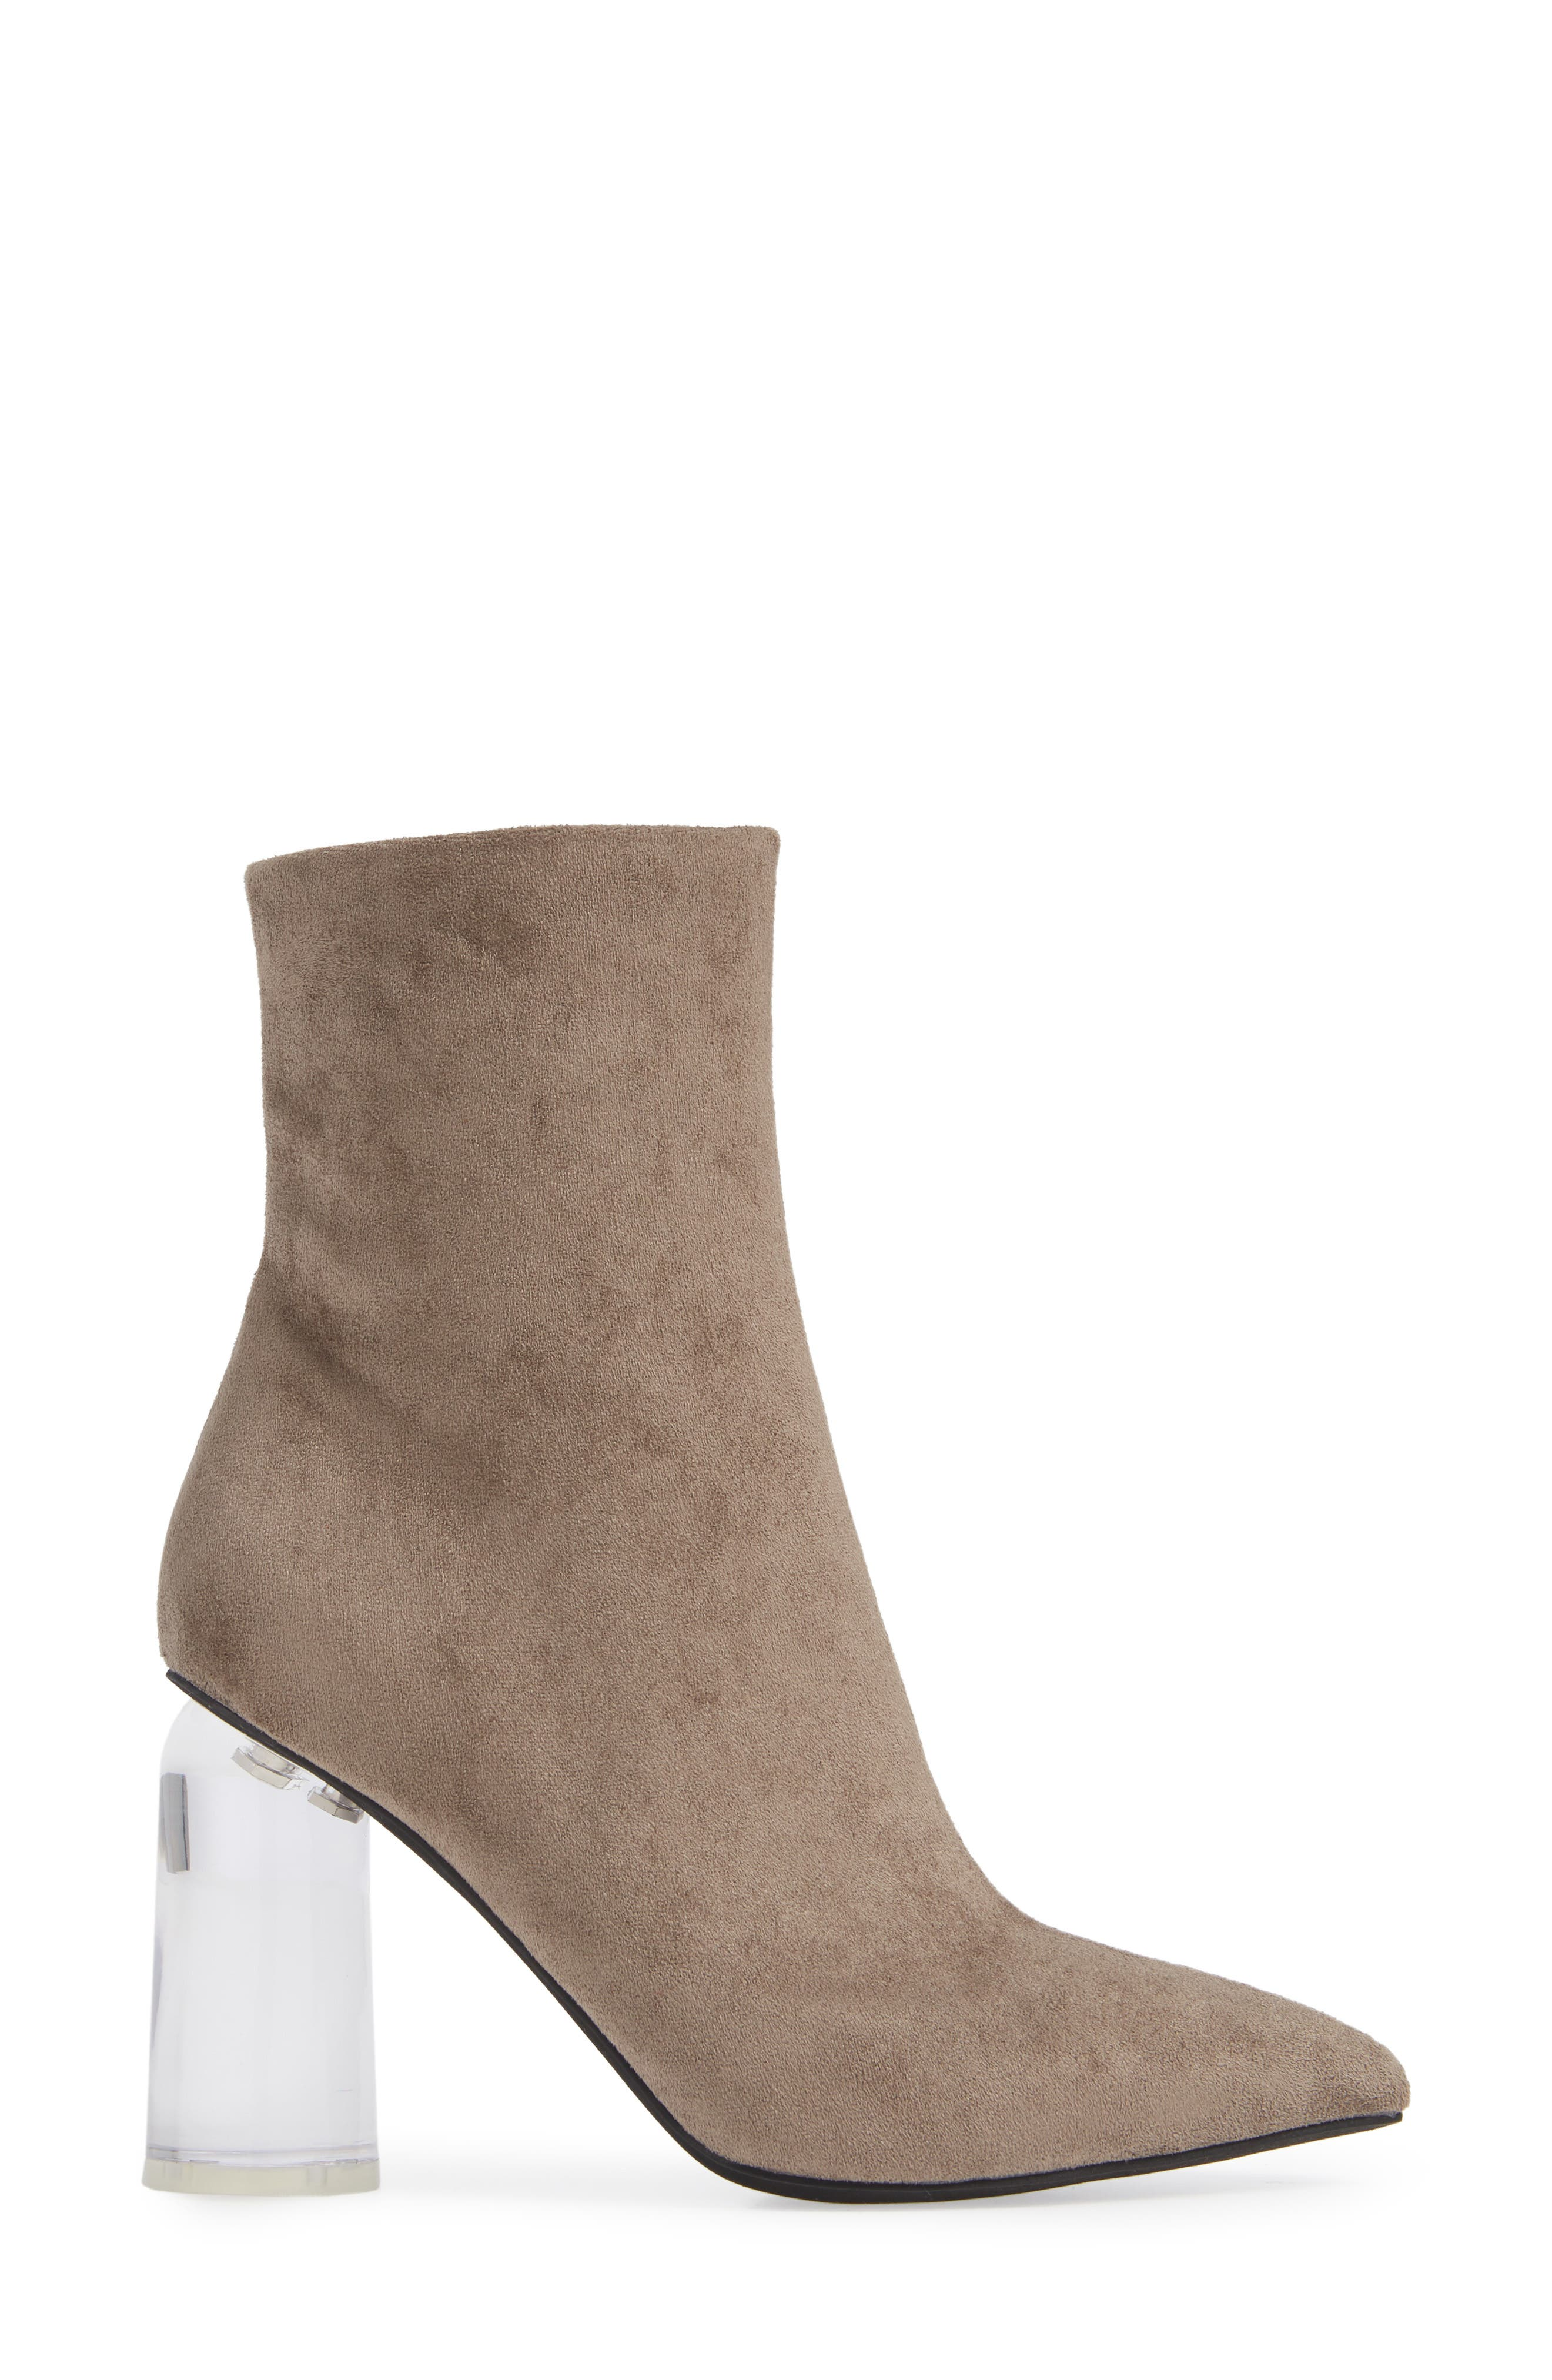 Lustful Bootie,                             Alternate thumbnail 3, color,                             TAUPE SUEDE